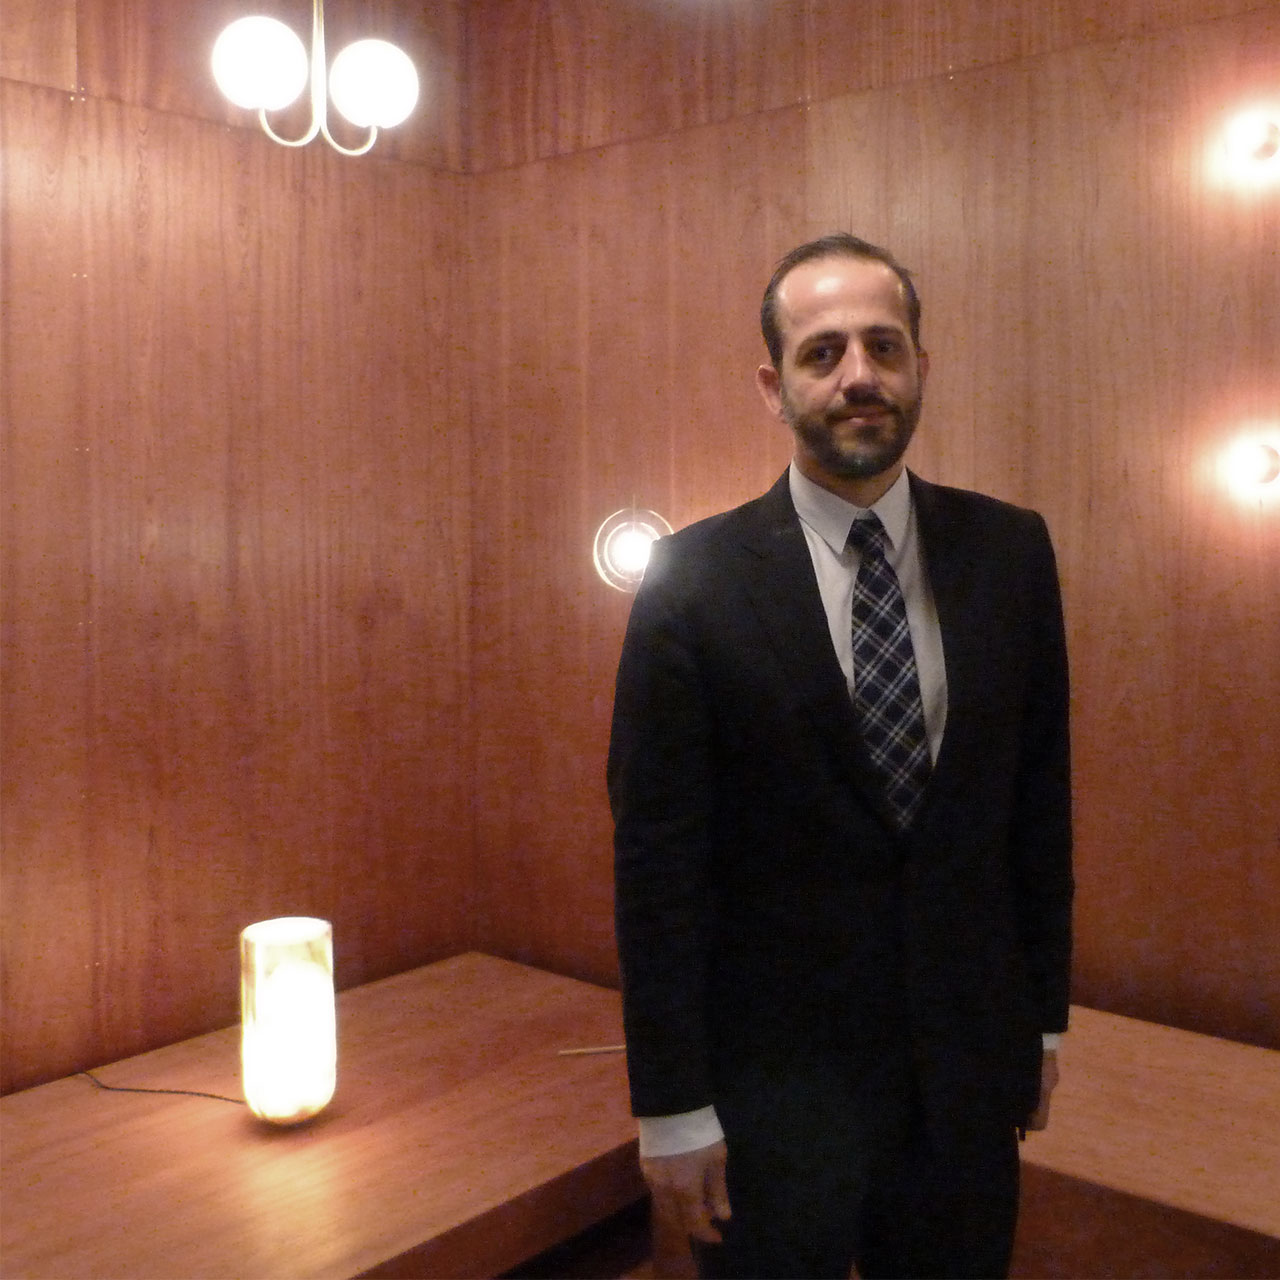 Milan 2013: An Interview with Michael Anastassiades [VIDEO]